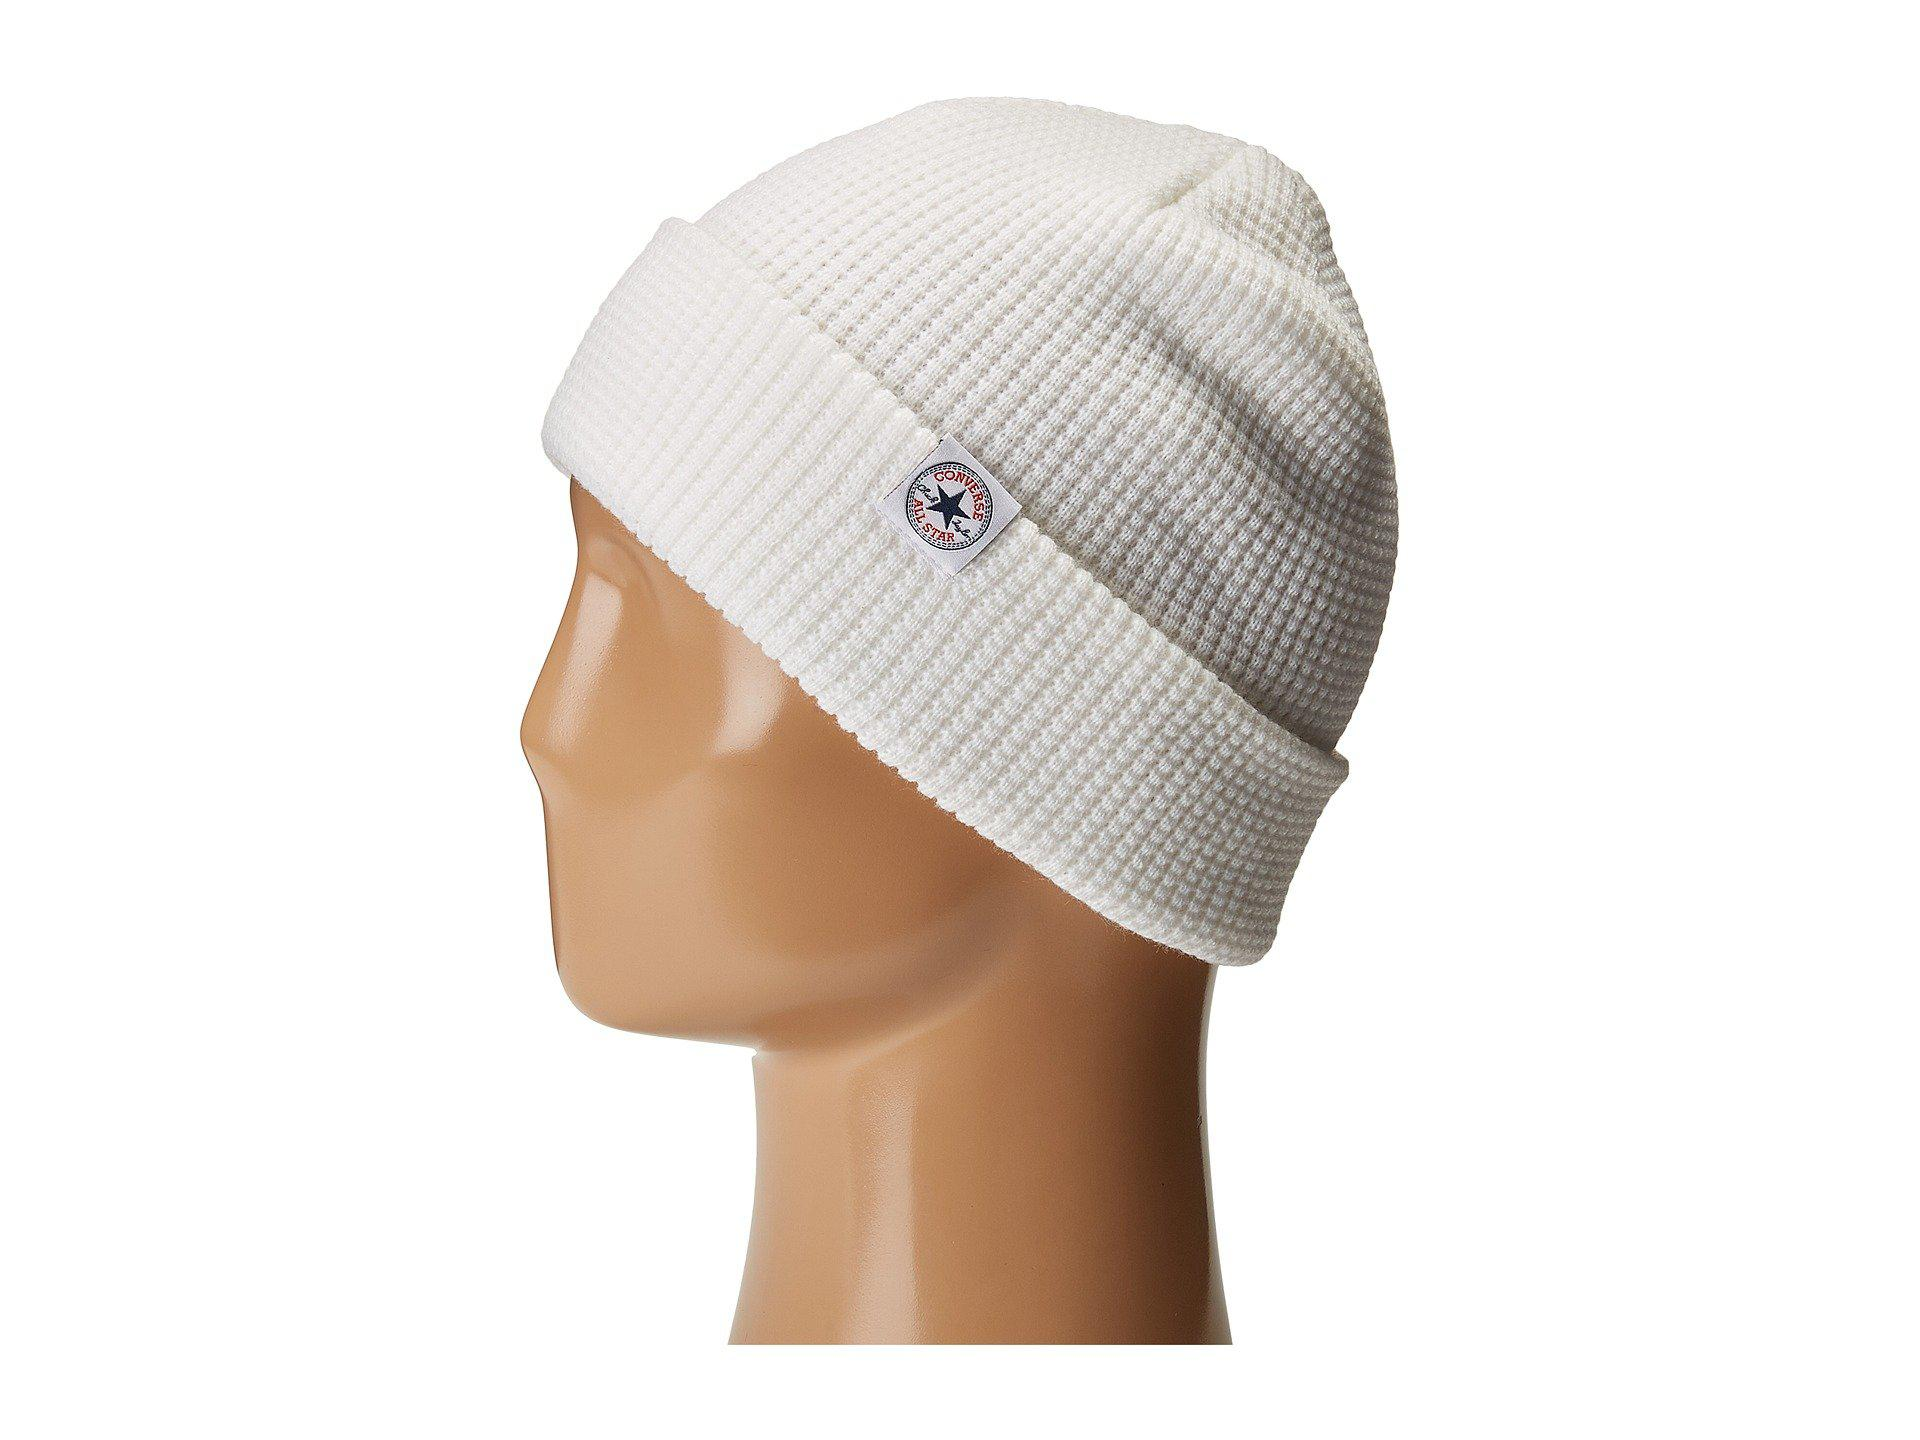 cae30771c75 Lyst - Converse Thermal 2-in-1 Knit in White for Men